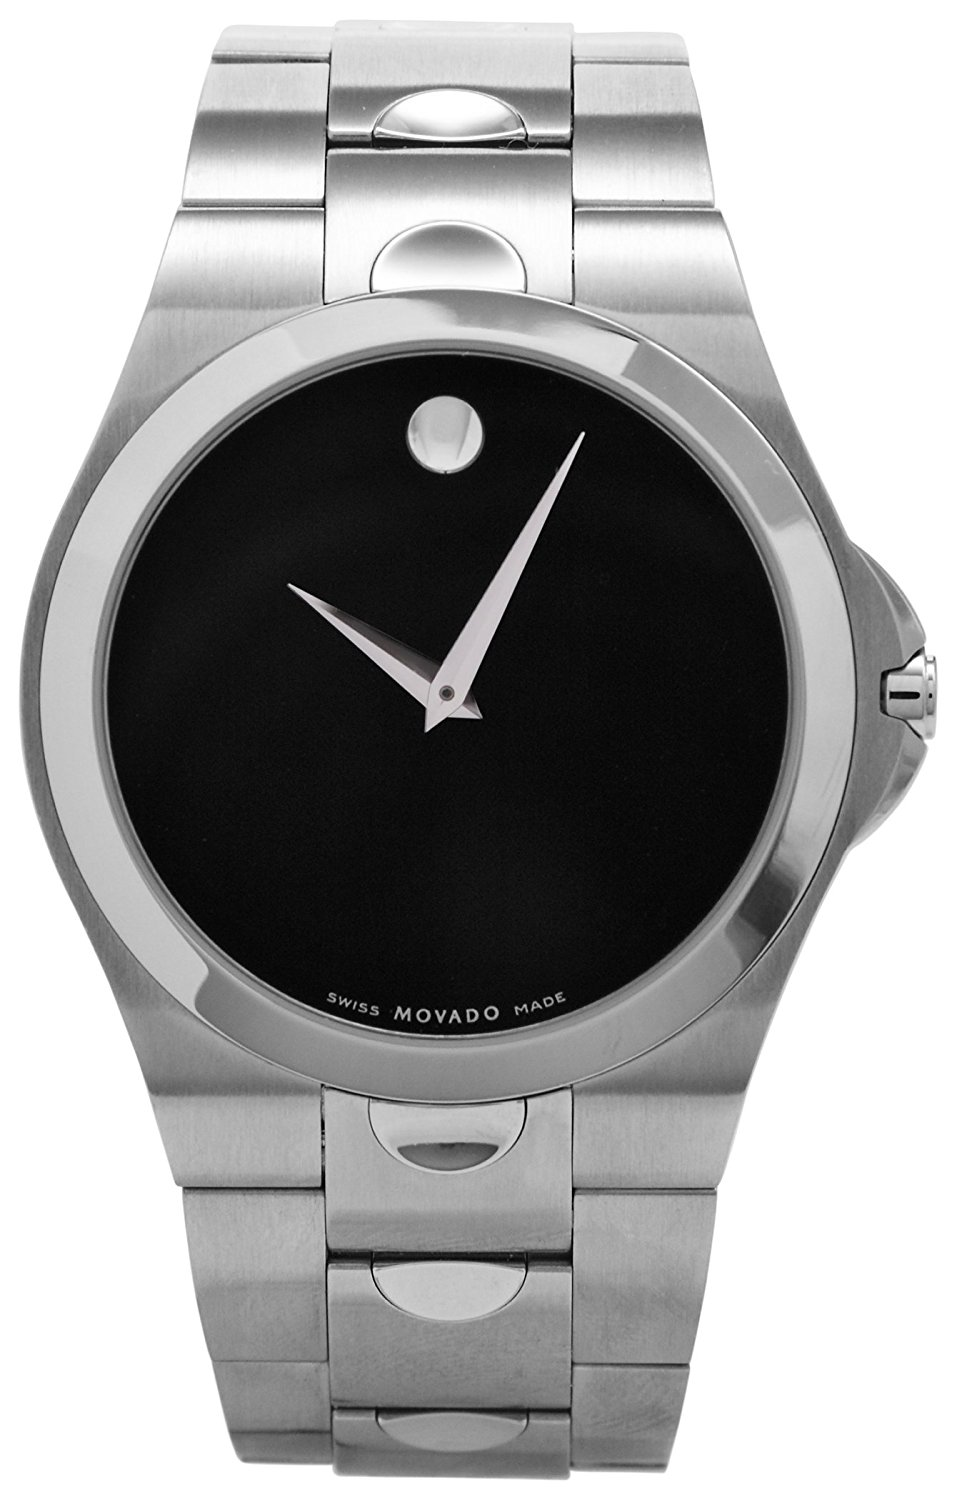 7d46998a9 Cheap Watch Movado, find Watch Movado deals on line at Alibaba.com